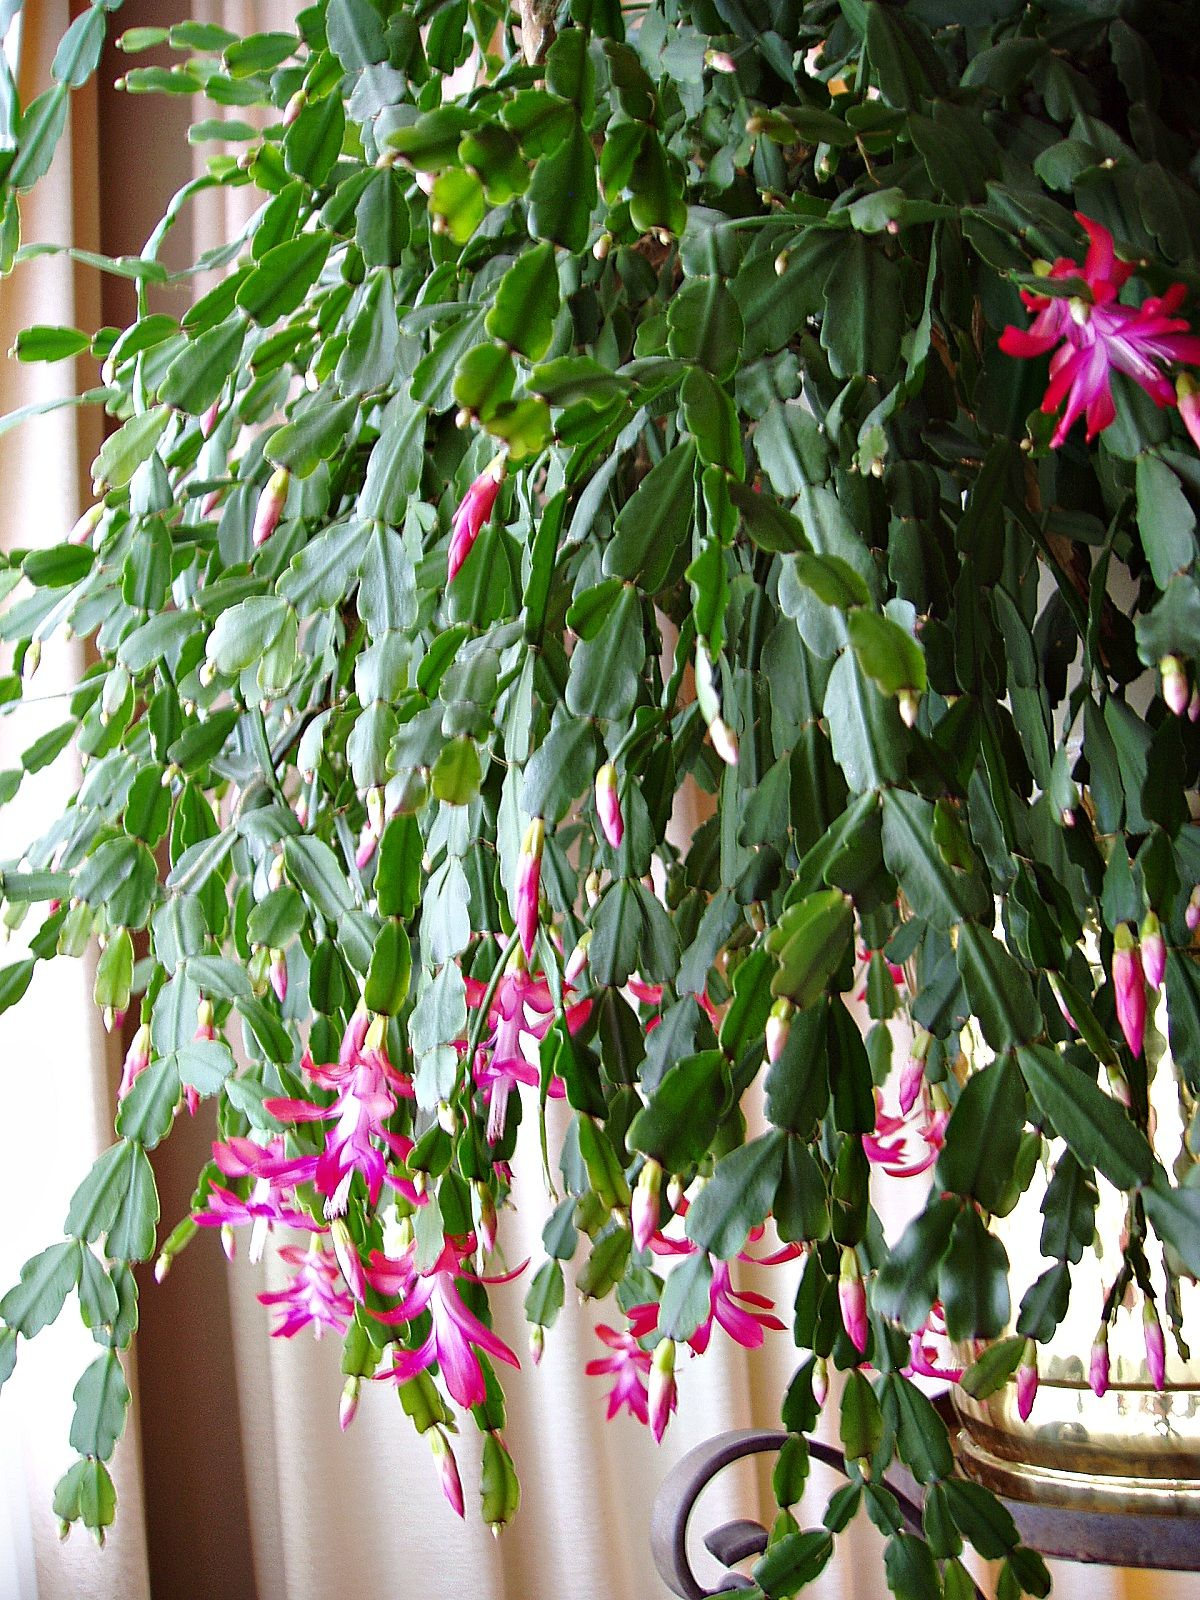 Beautiful Christmas cactus So pretty when in full bloom